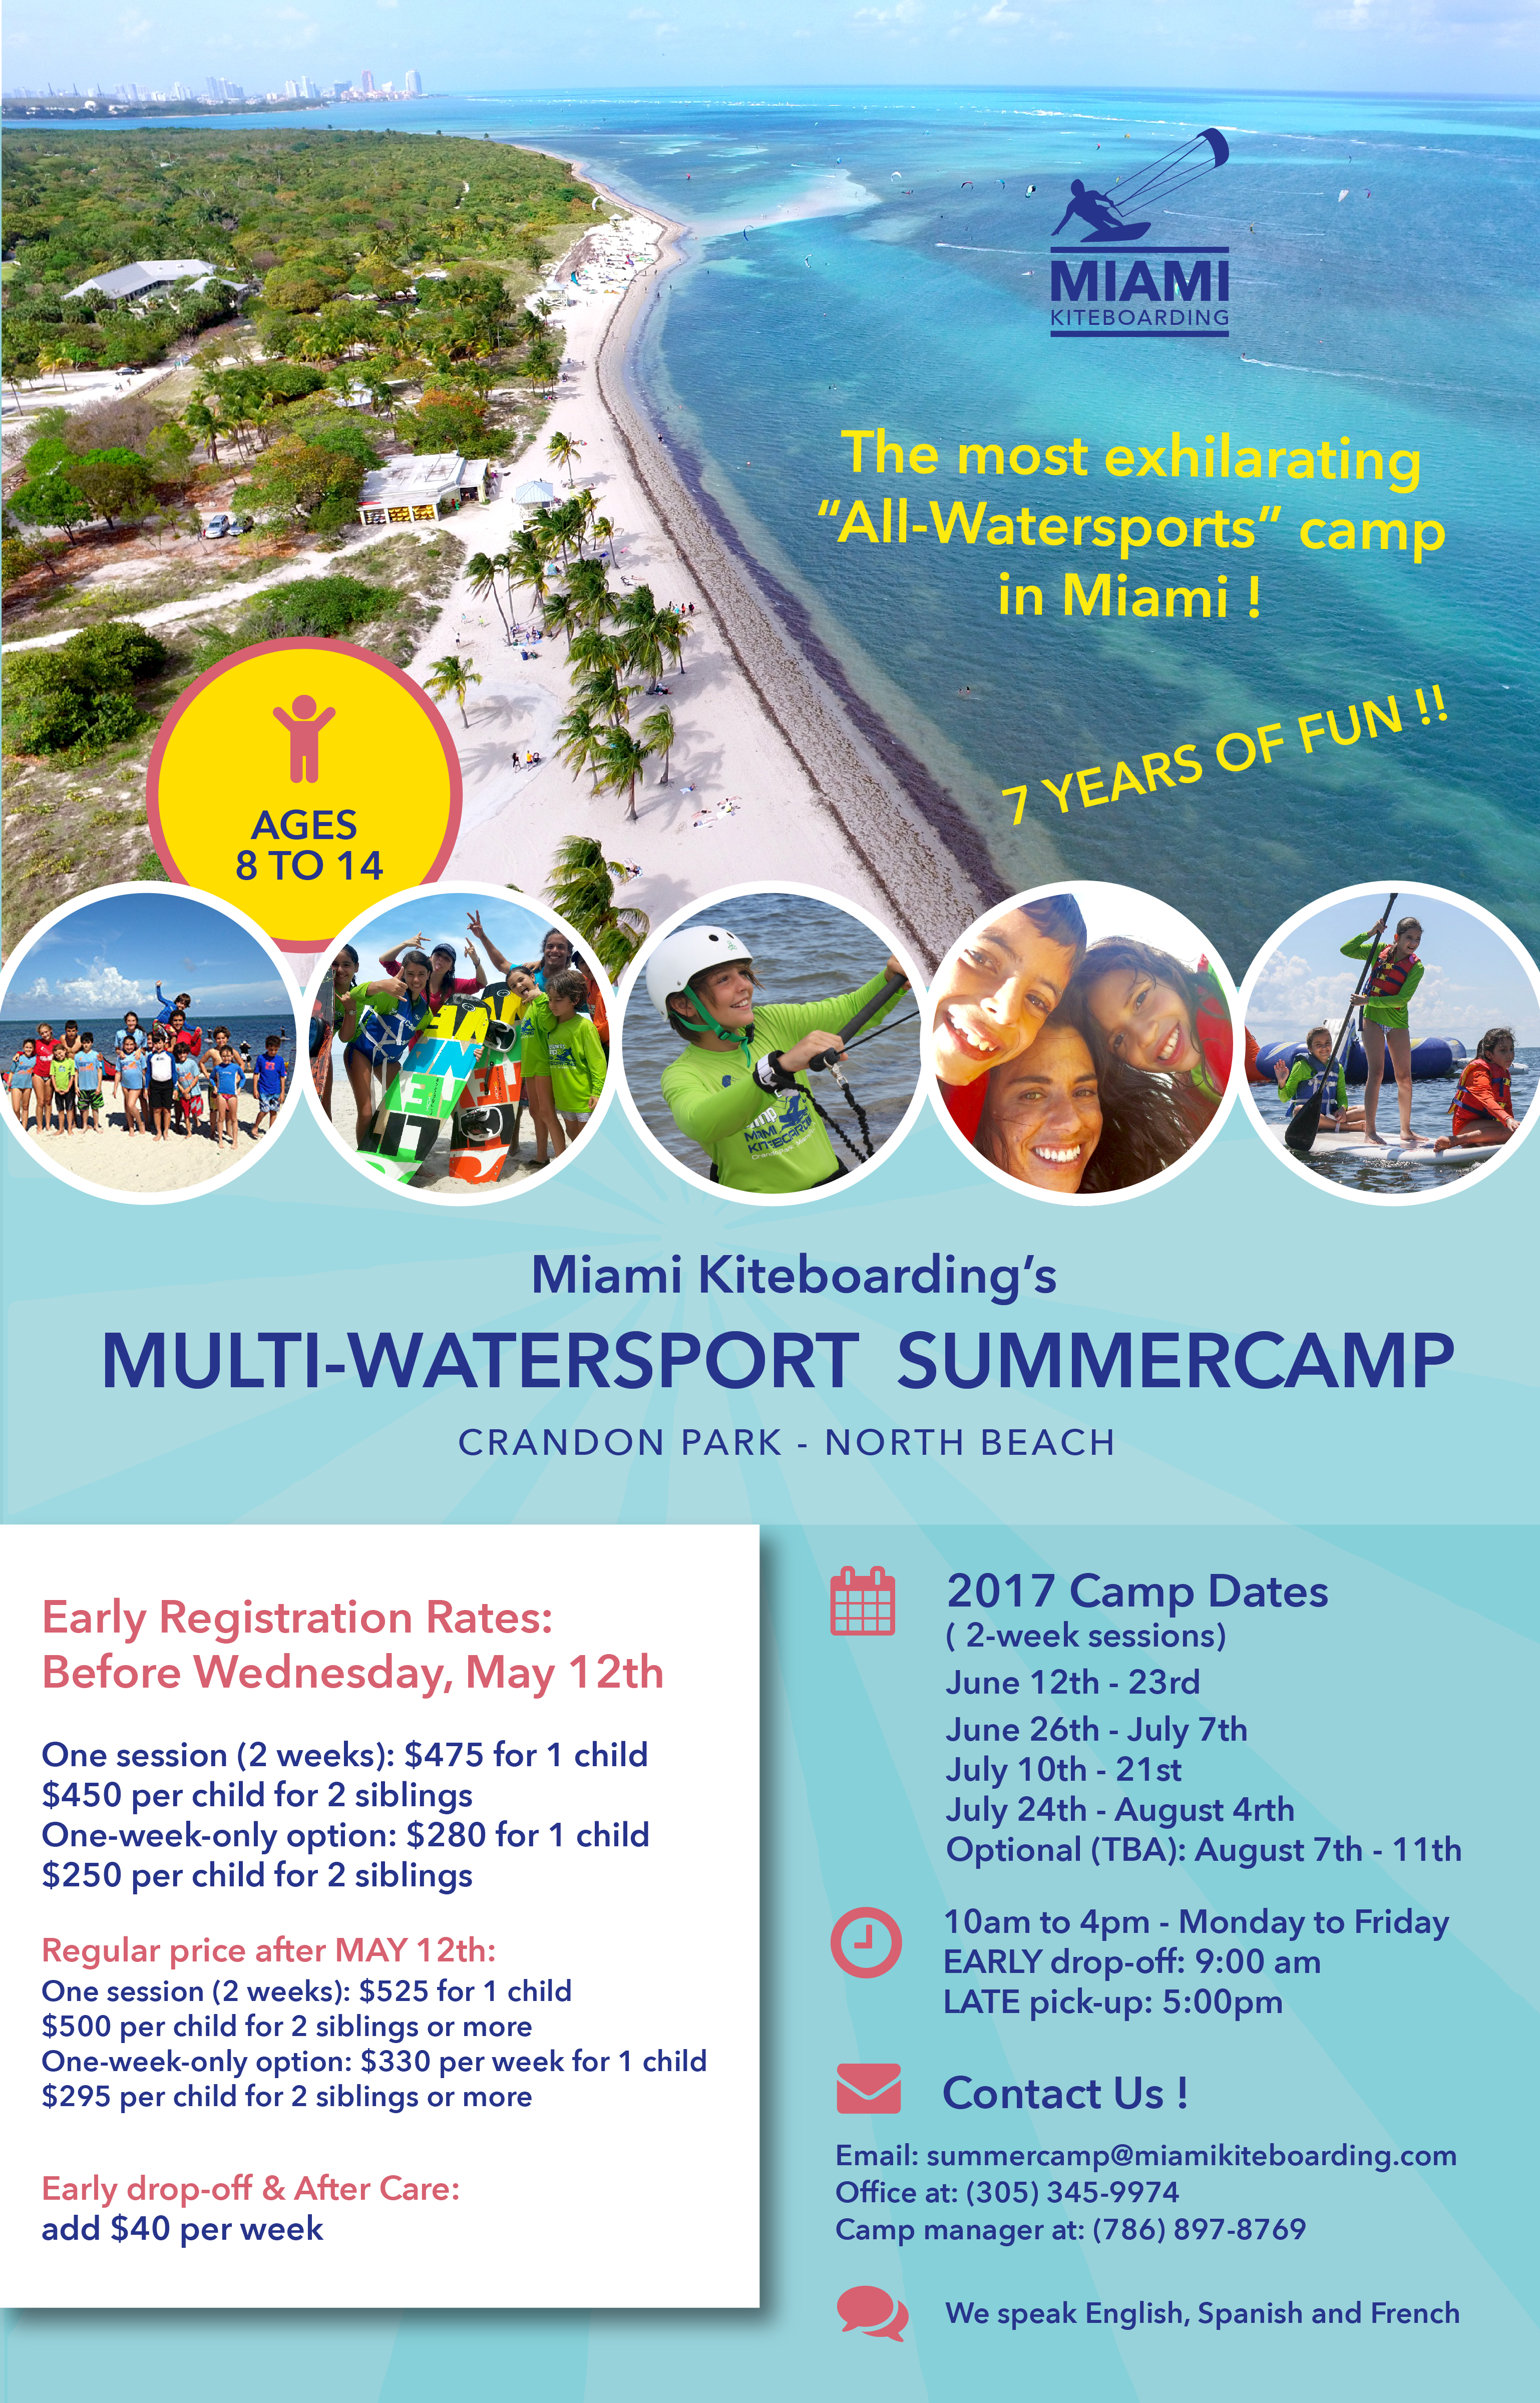 MKB-Islander-News-Summer-Camp-Guide-Ad-full-page.jpg